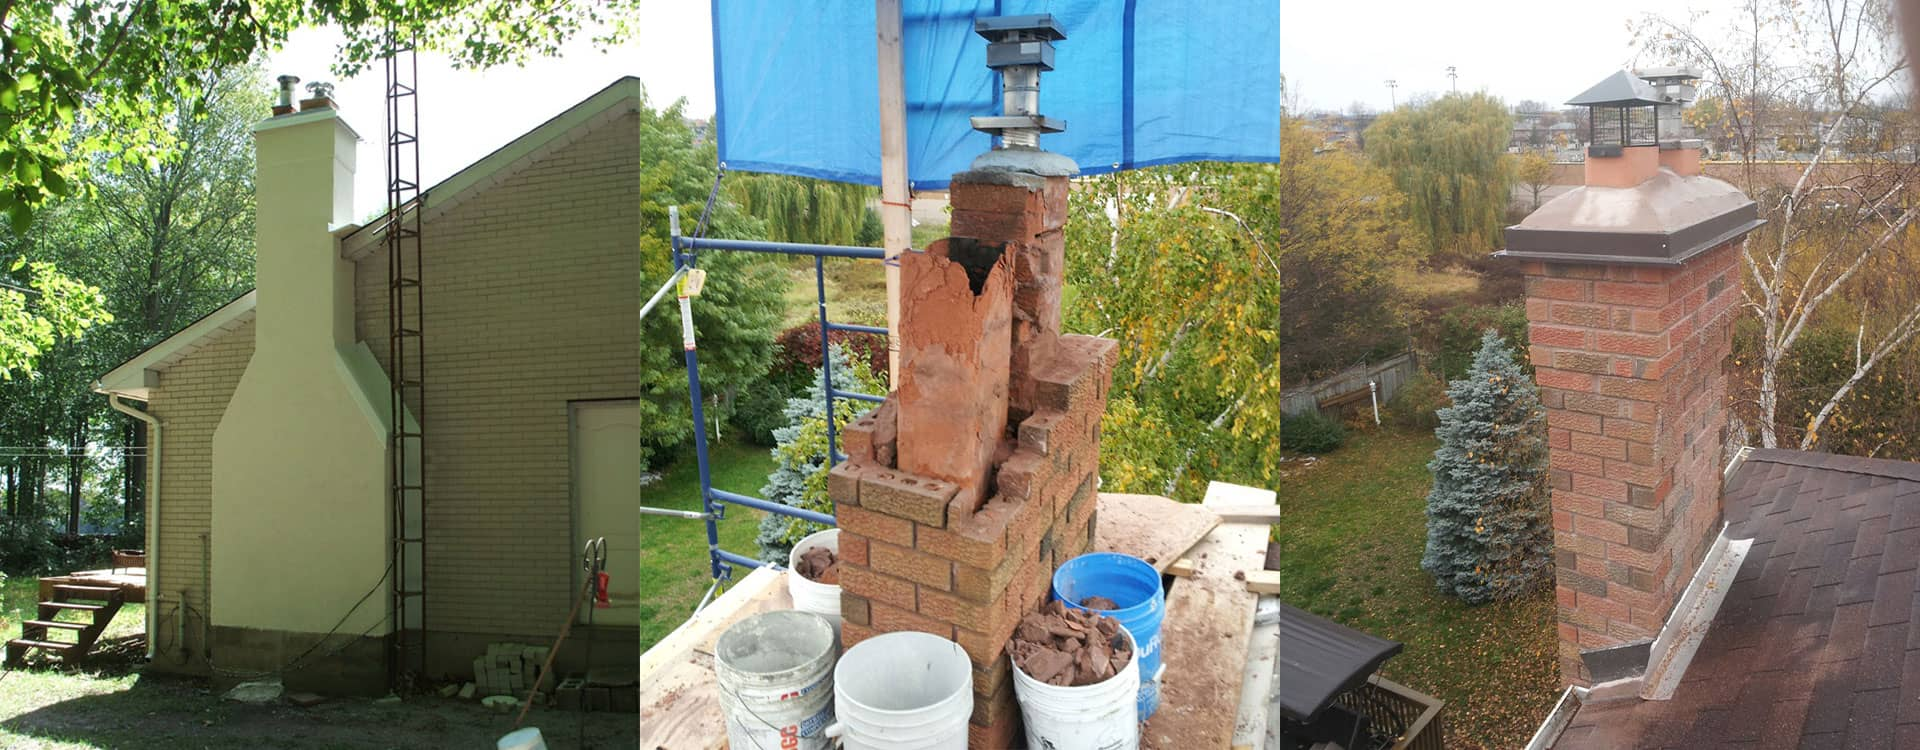 Chimney Sweeping, Chimney Cleaning and Carpet Cleaning Services